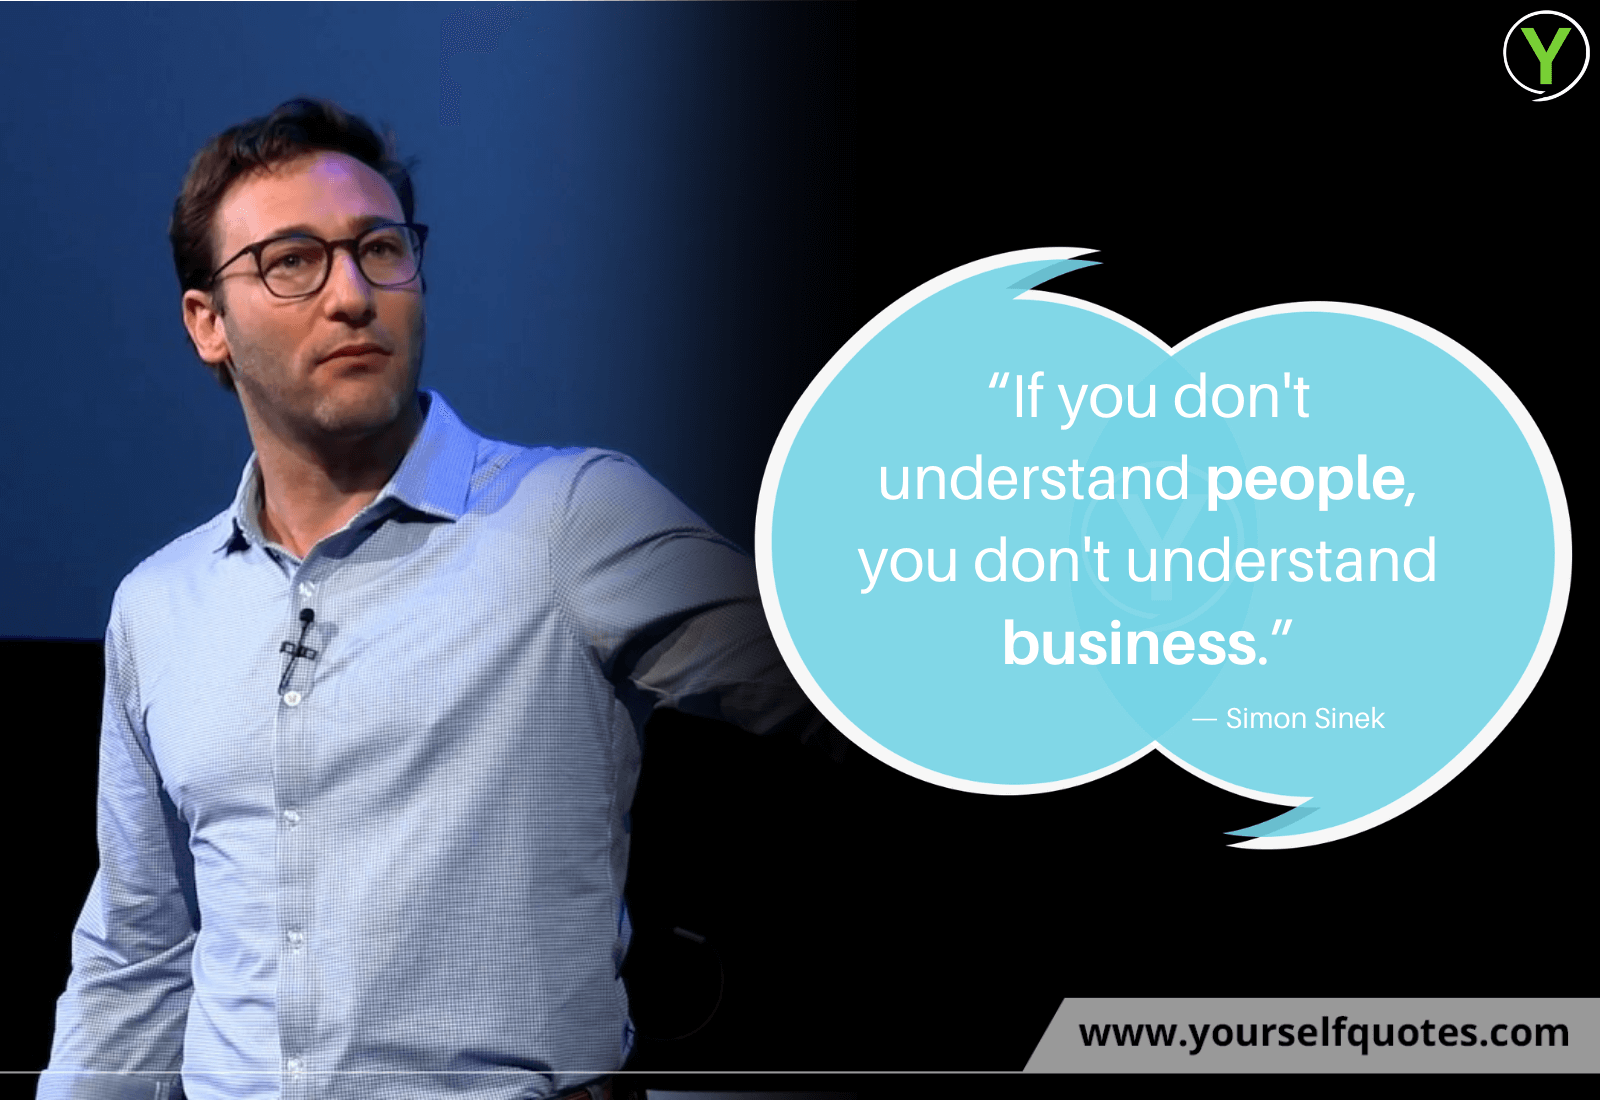 Simon Sinek Business Quotes Images